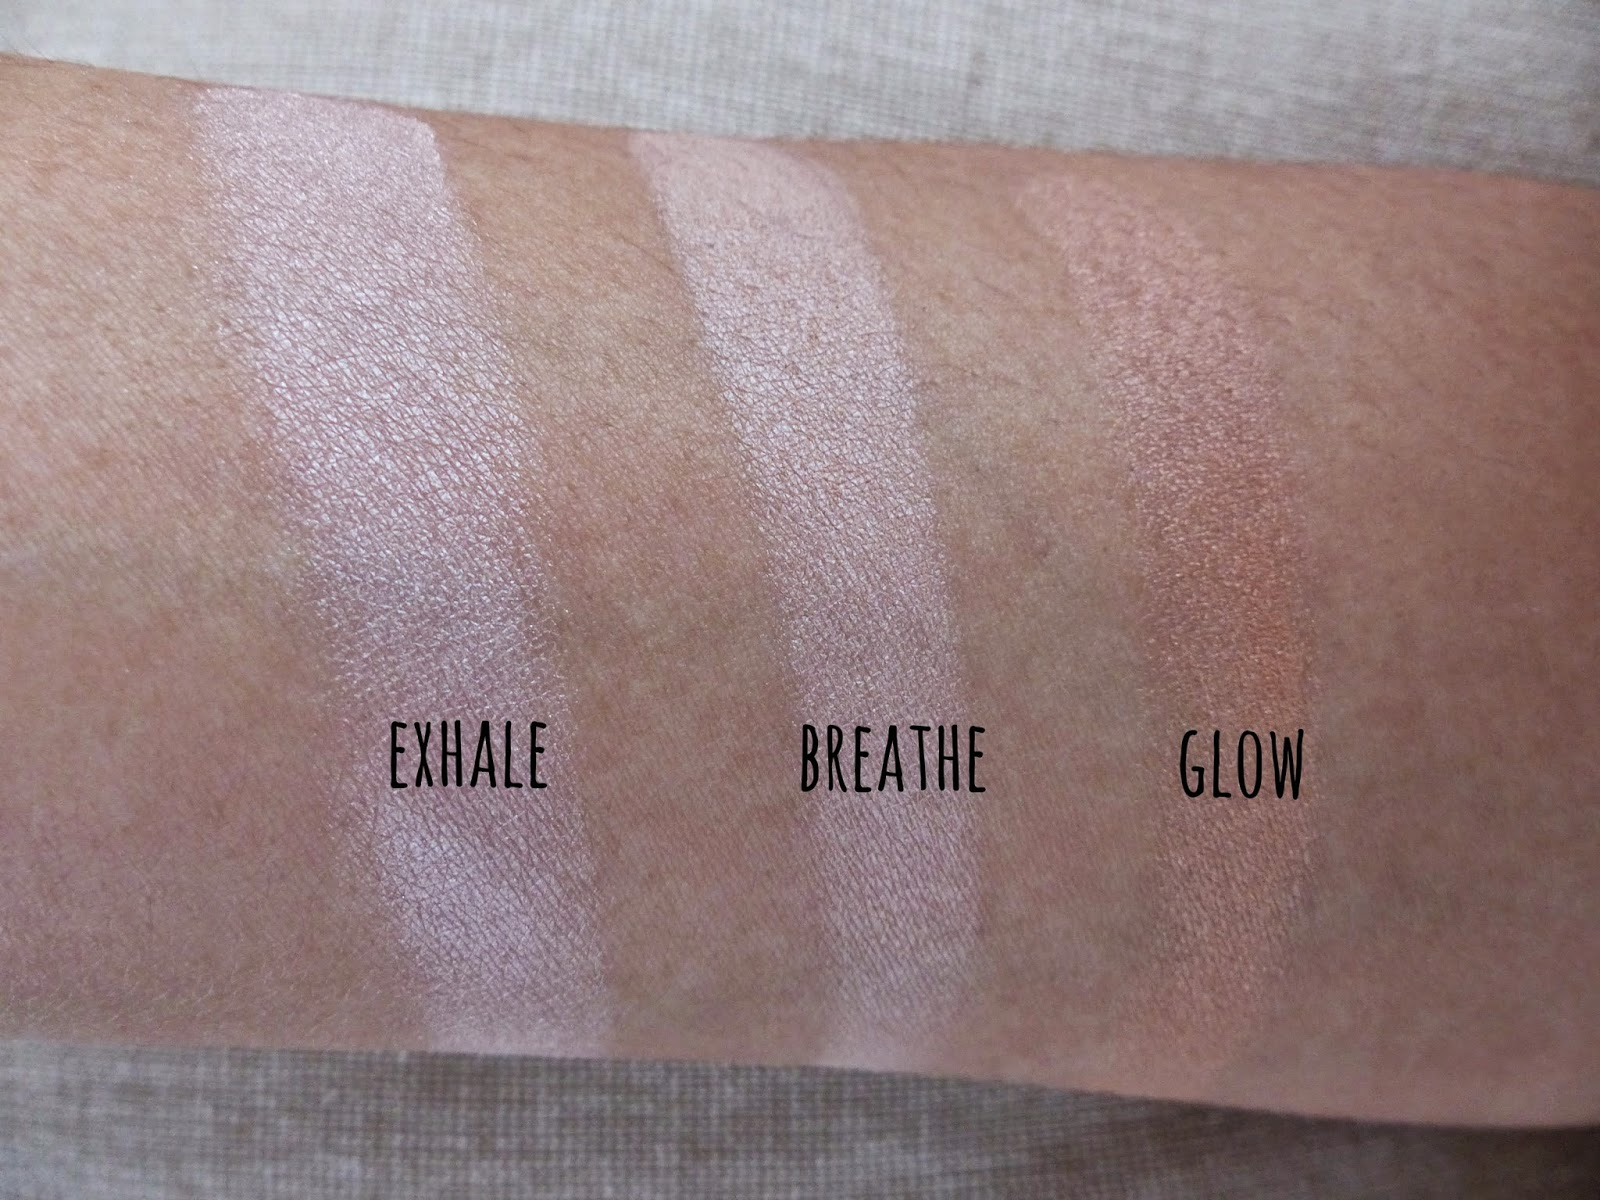 how to get really pale skin fast